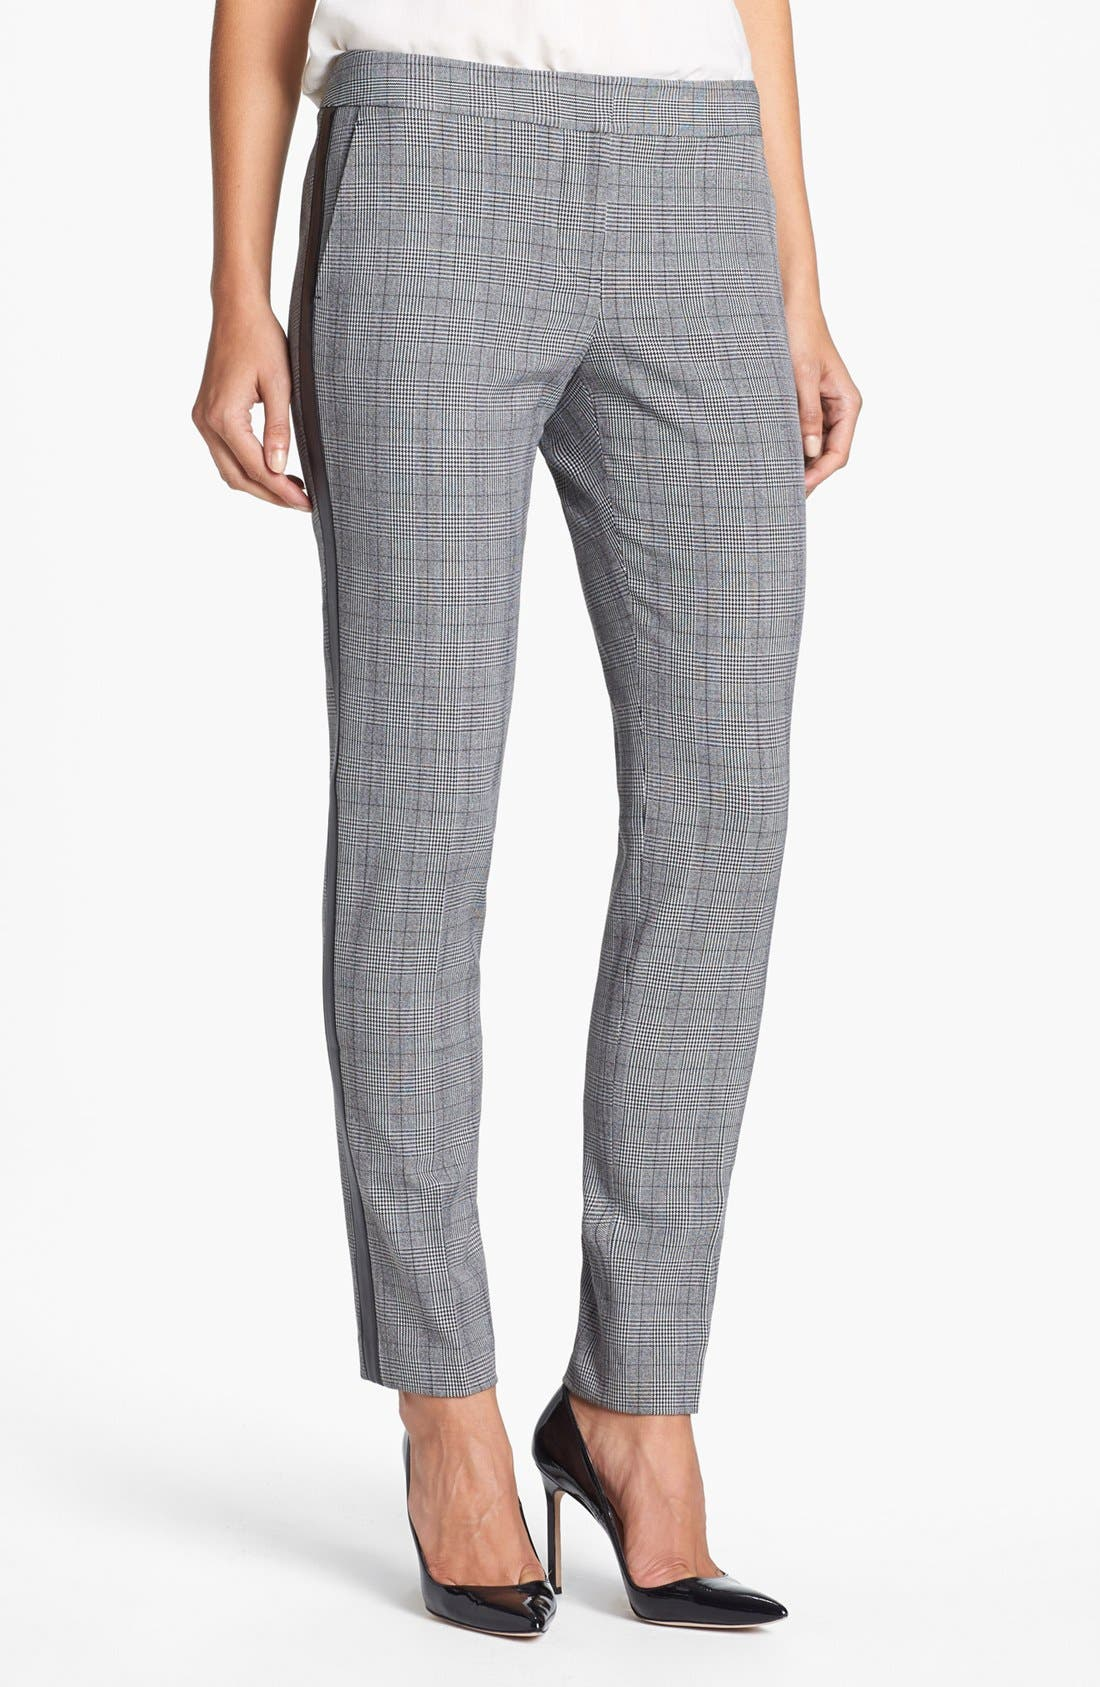 Main Image - Vince Camuto Faux Leather Stripe Glen Plaid Trousers (Online Exclusive)